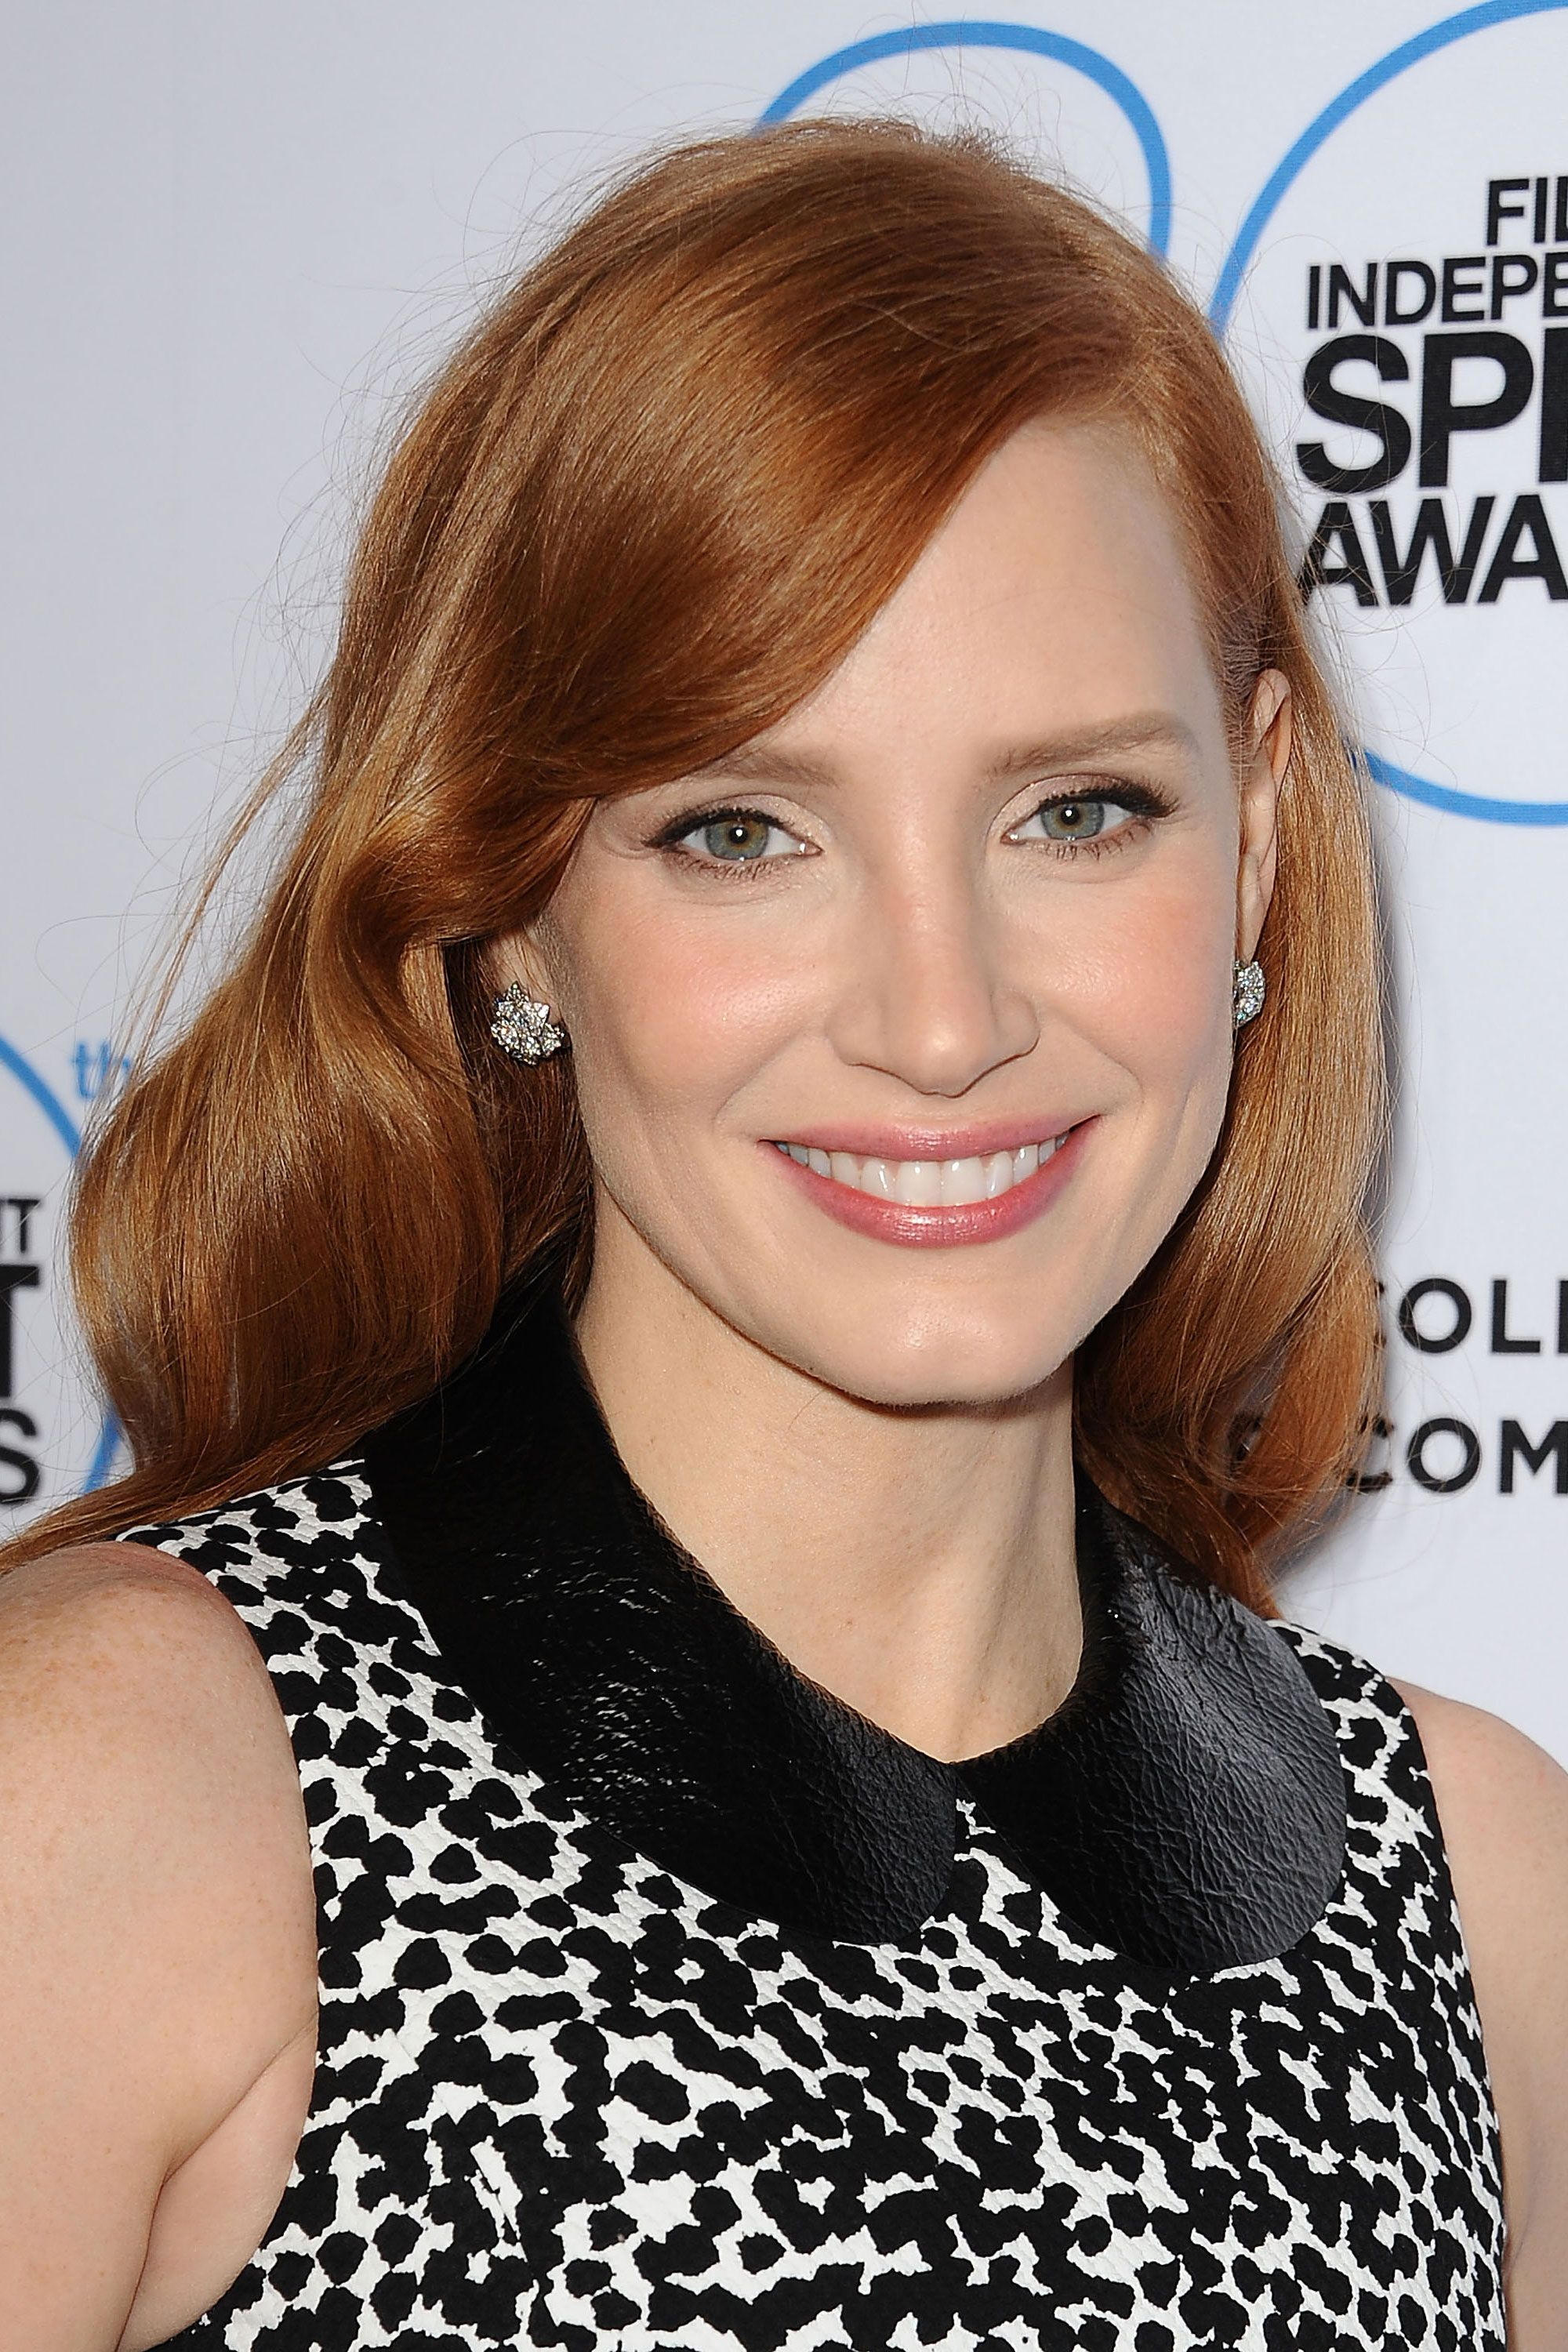 Chastain's peaches and cream complexion is the perfect complement to her auburn waves and pink pout.